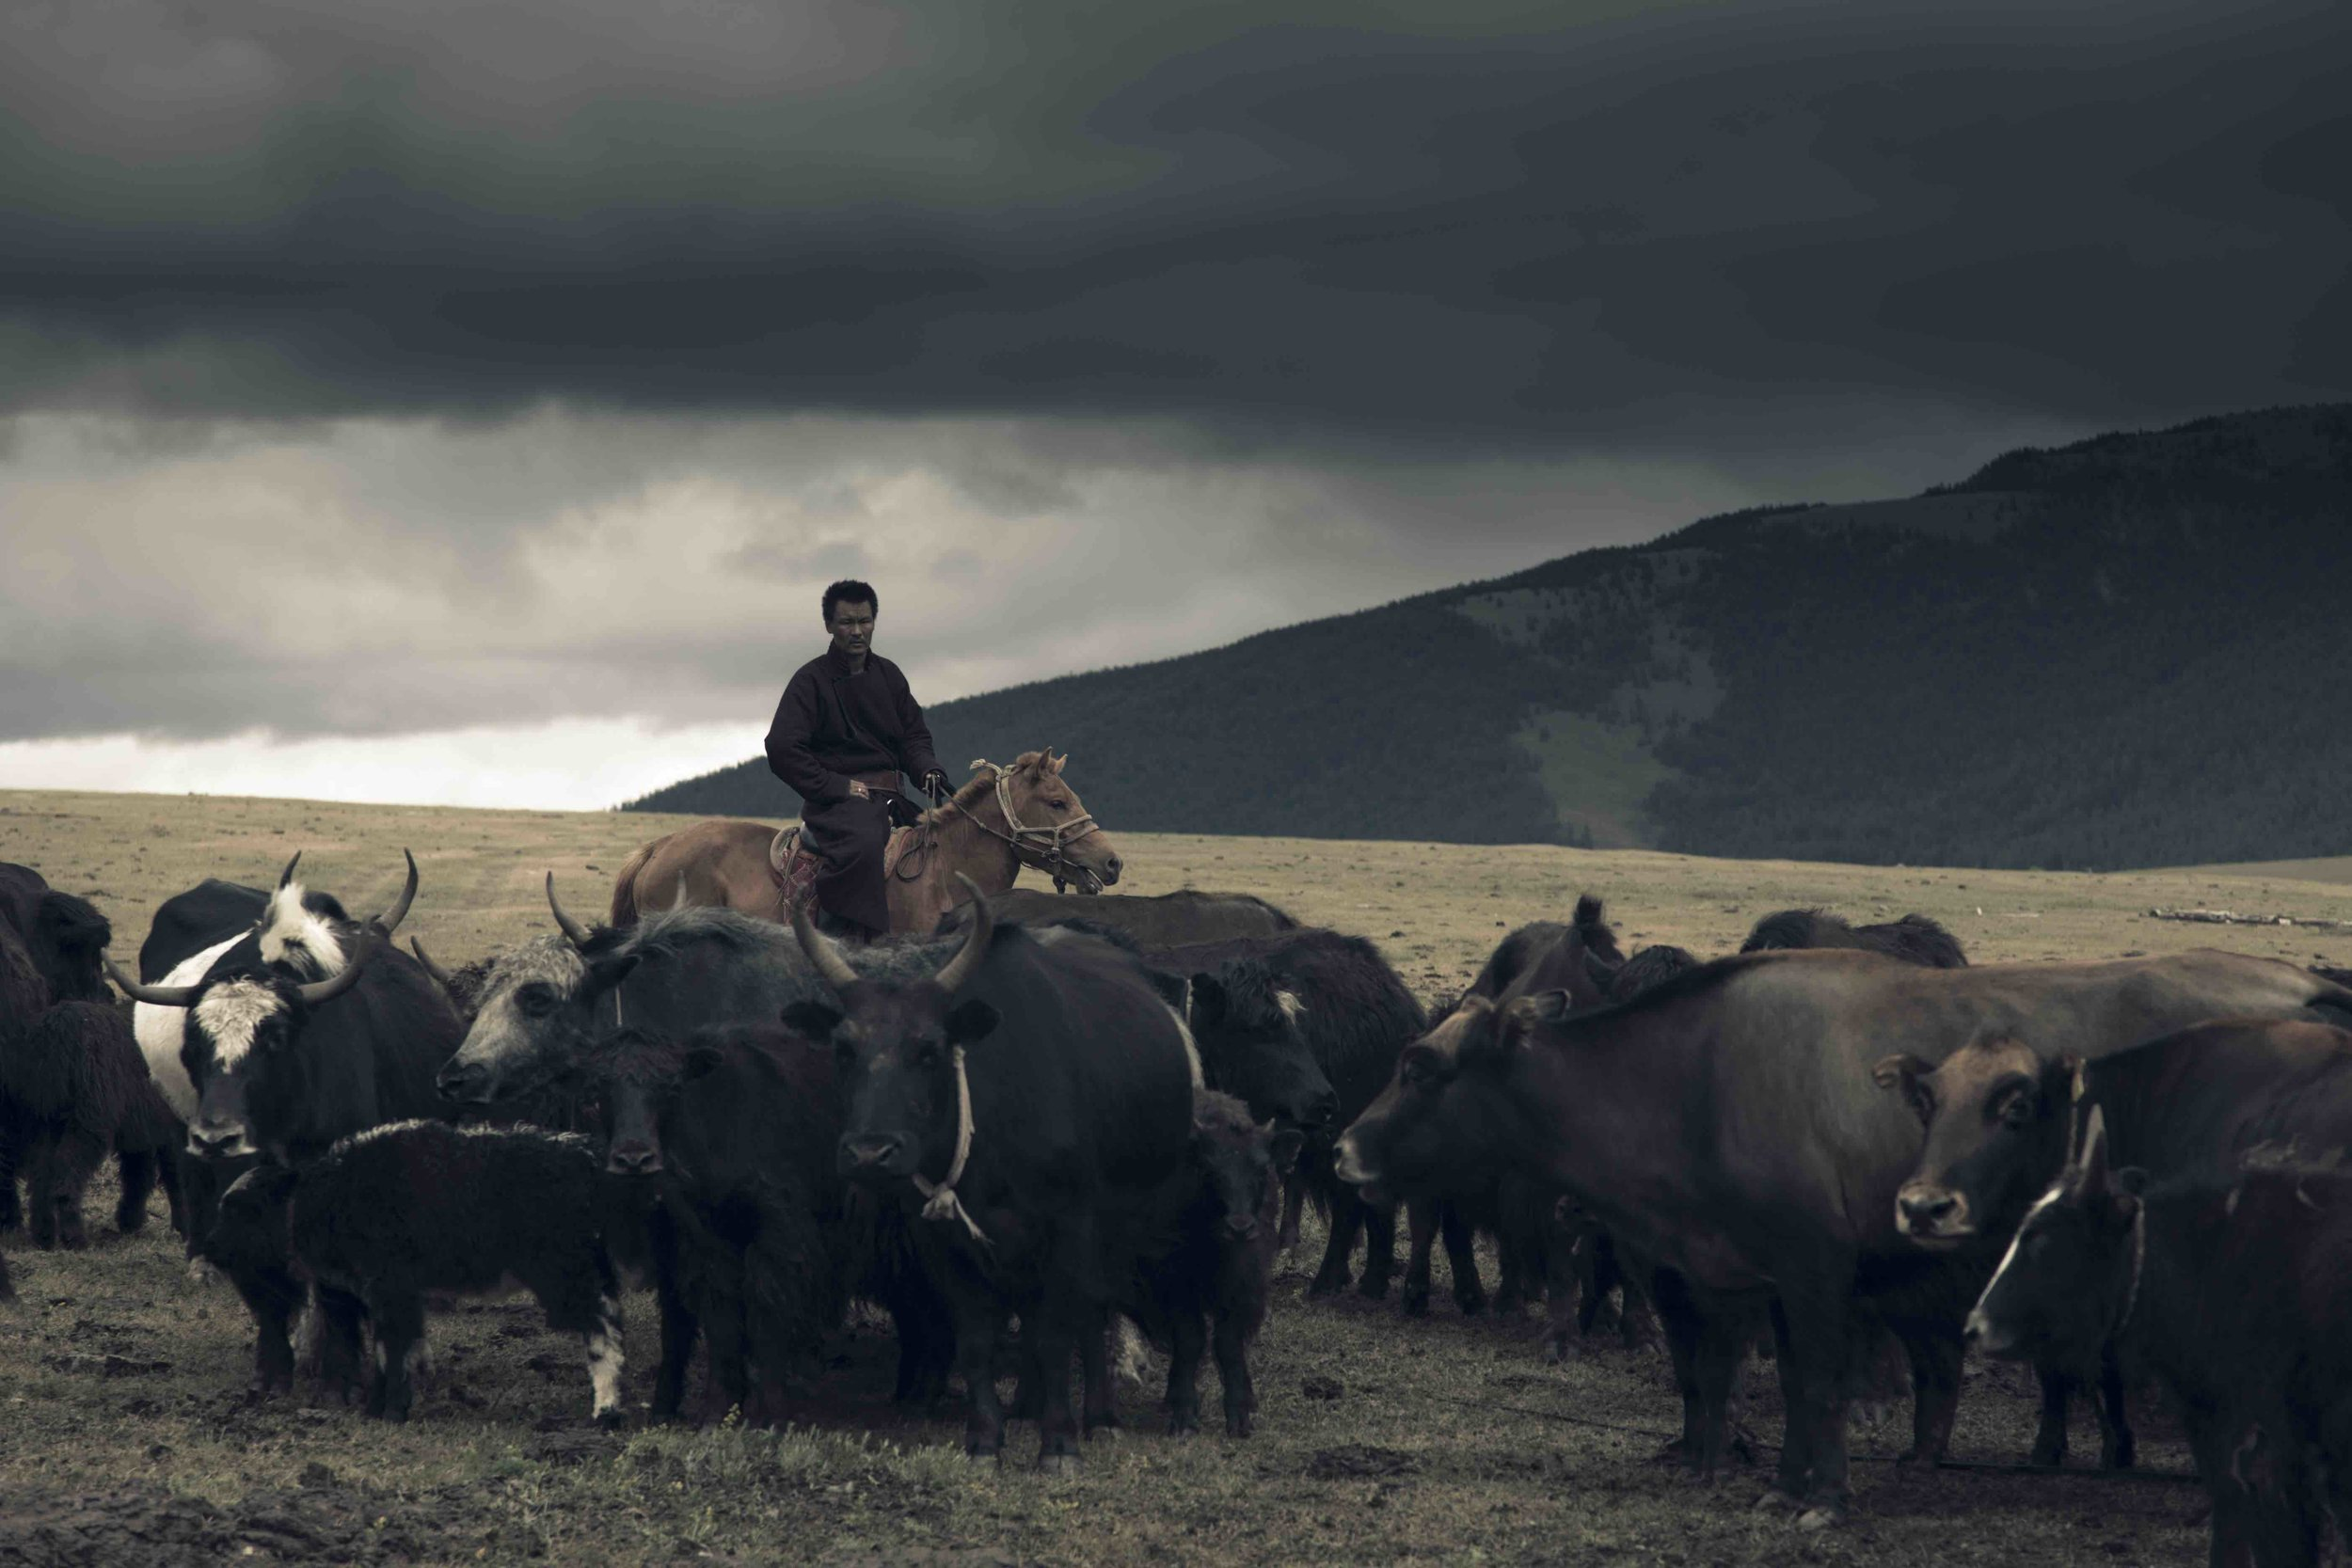 Herder tribes have ruled the majestic steppes of Mongolia for thousands of years. Picture: Tengri.